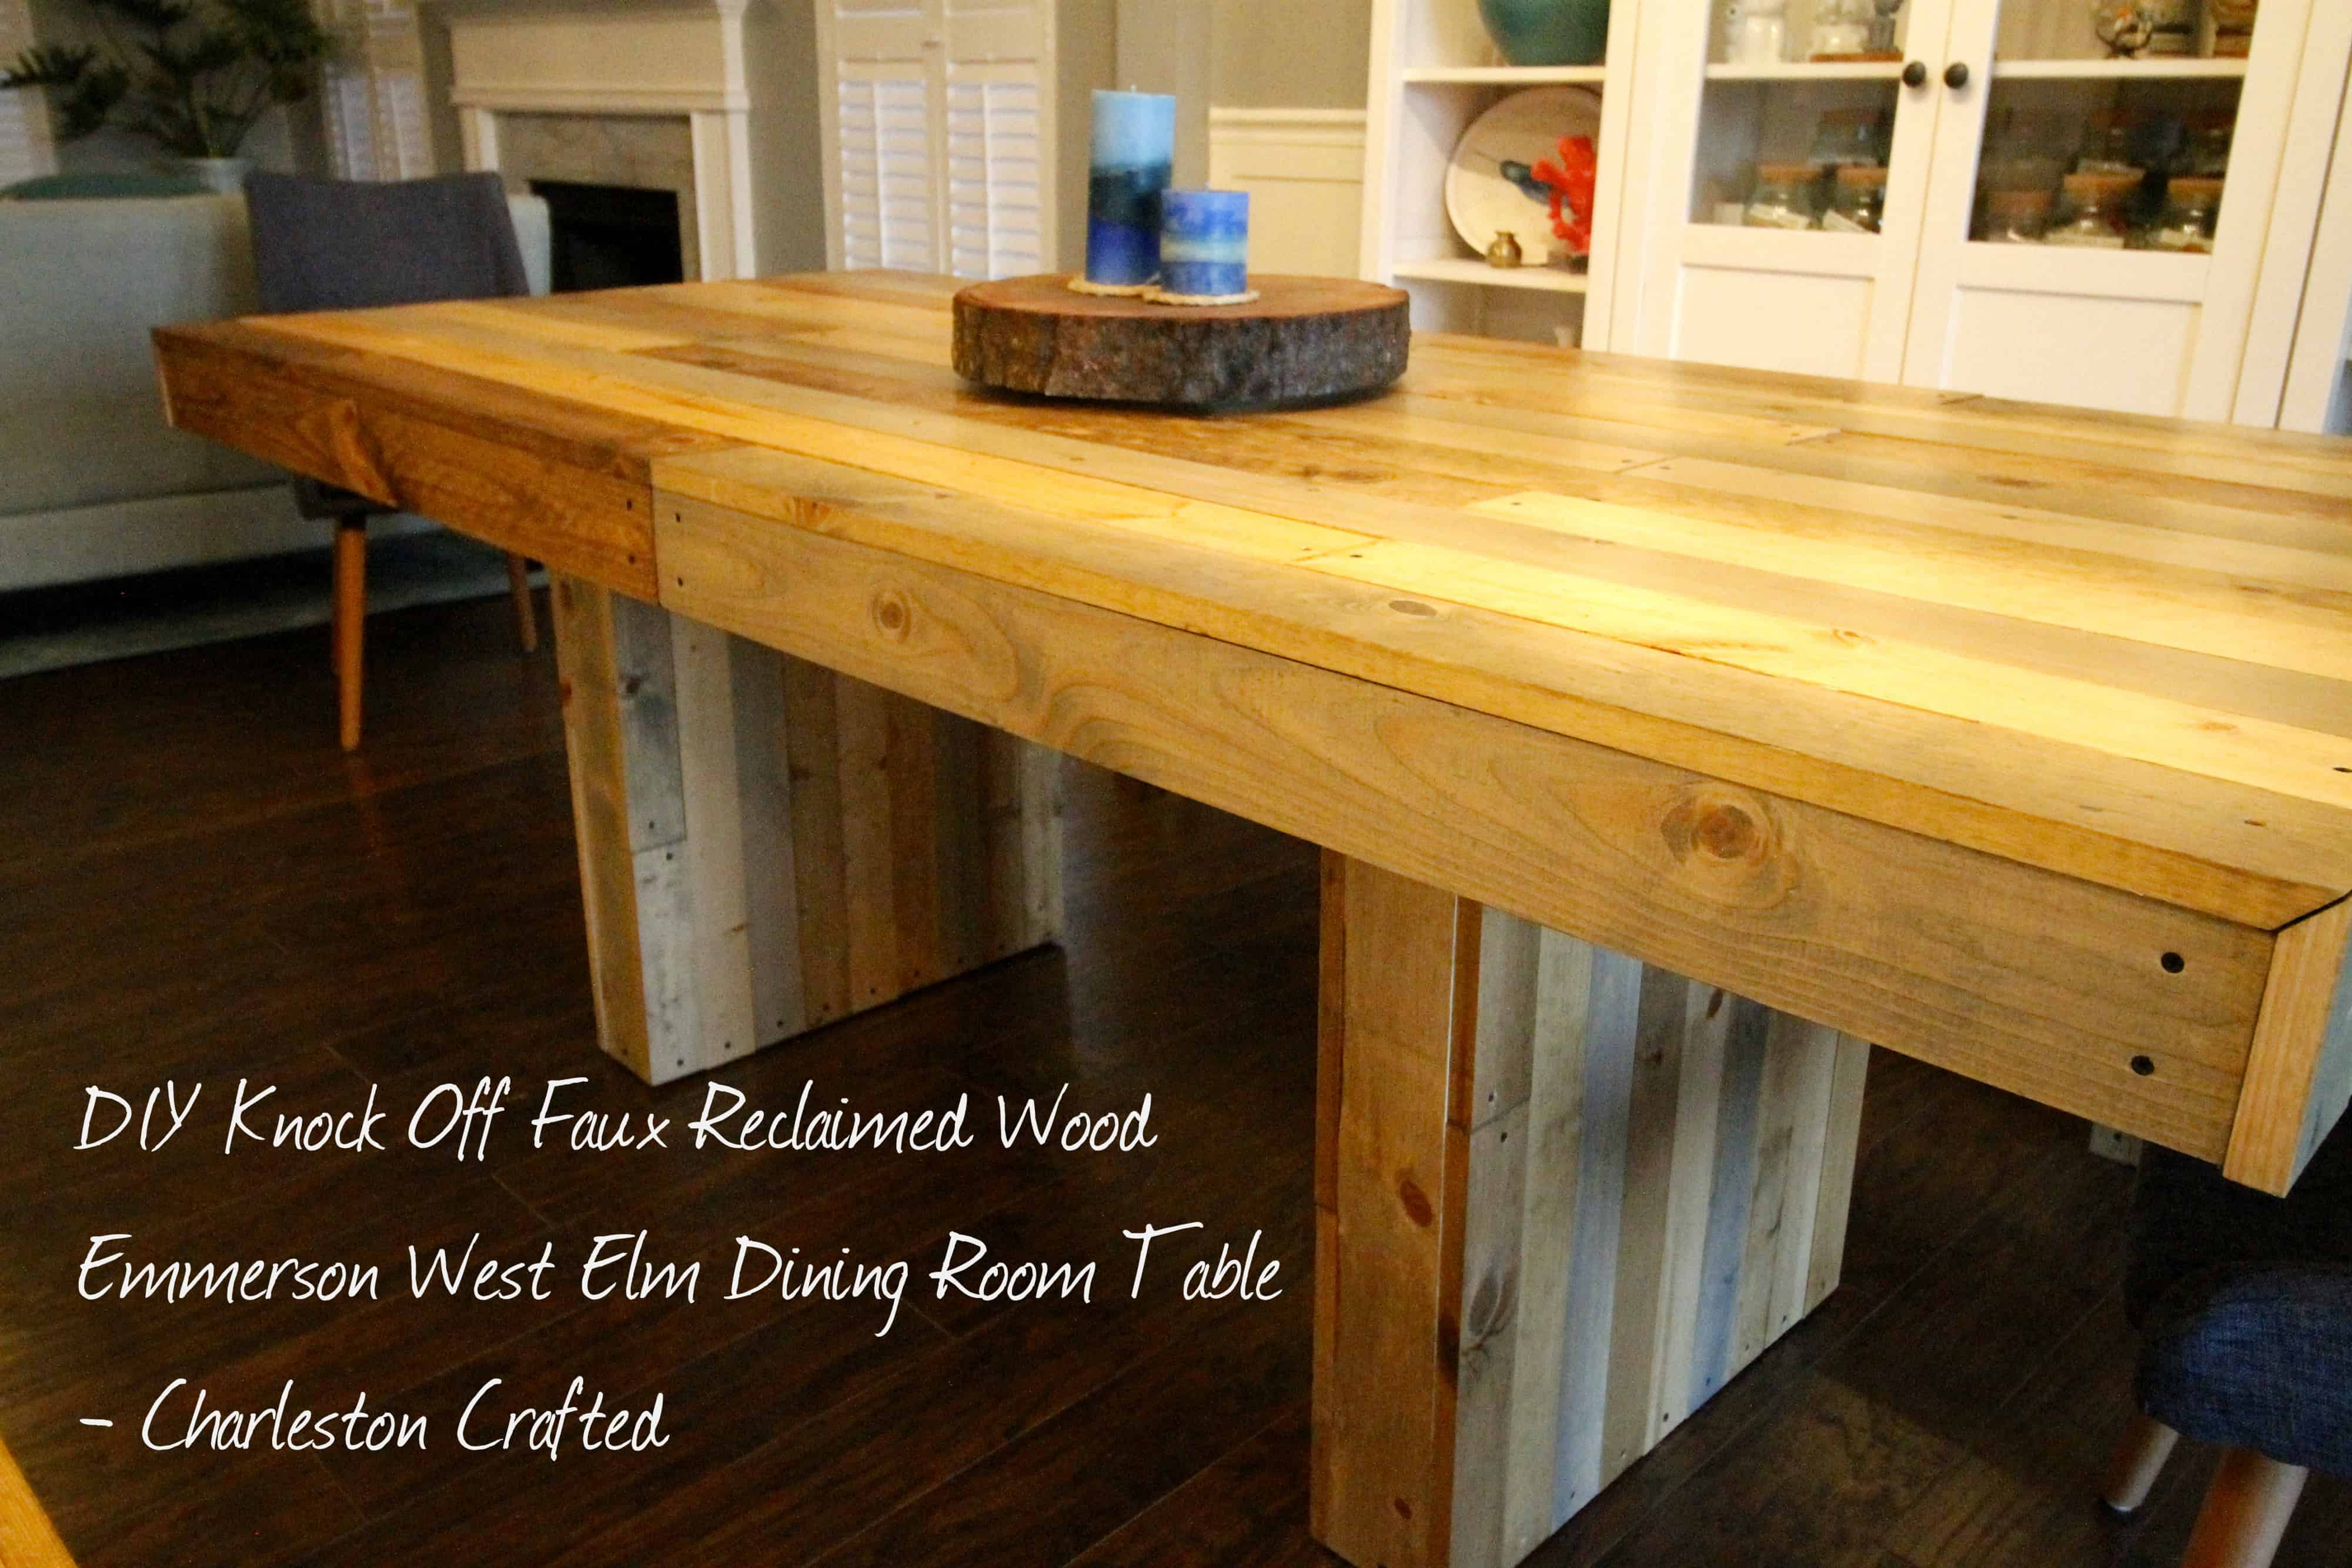 DIY Knock Off Faux Reclaimed Wood Emmerson West Elm Dining Room Table    Charleston Crafted. DIY Knock Off Faux Reclaimed Wood Emmerson West Elm Dining Room